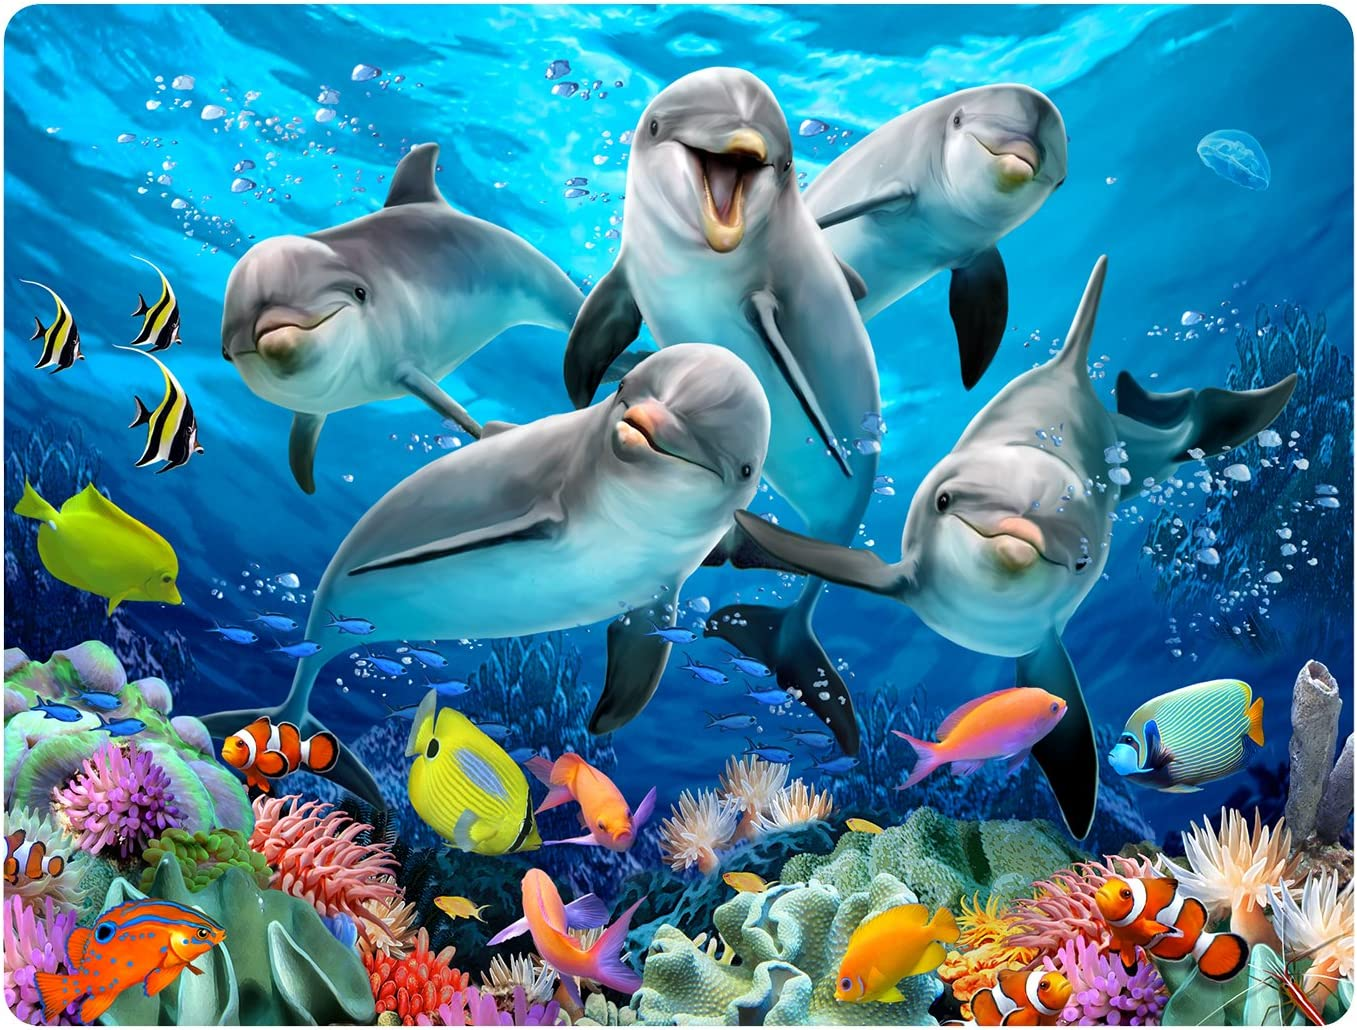 Howard Large-scale 70% OFF Outlet sale Robinson Super 3D Dolphin Postcard Delight Moving